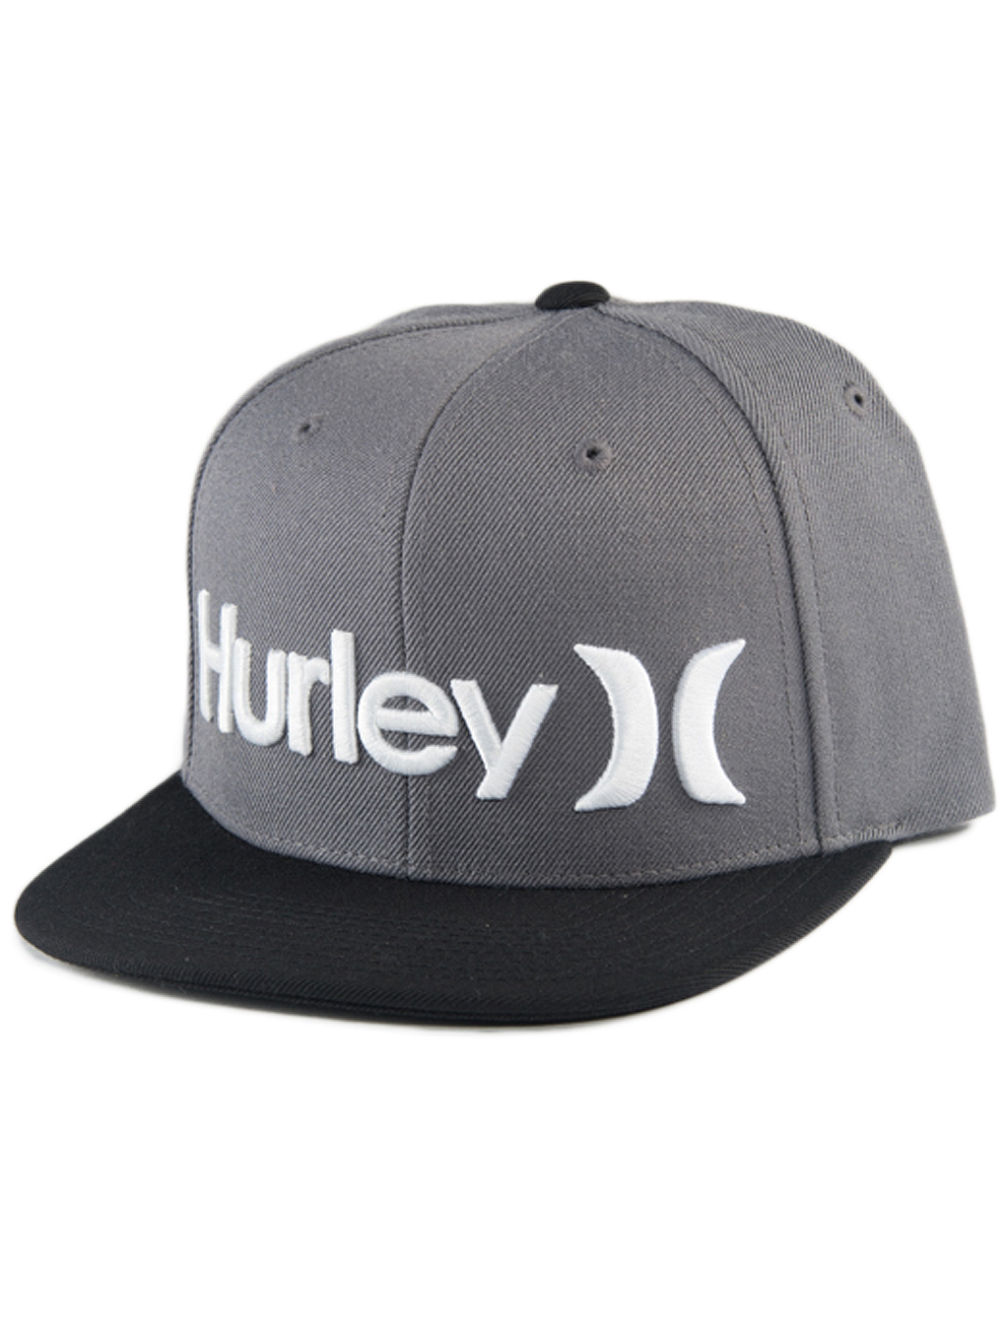 0d0783fad95 Buy Hurley One   Only Snapback Cap online at blue-tomato.com